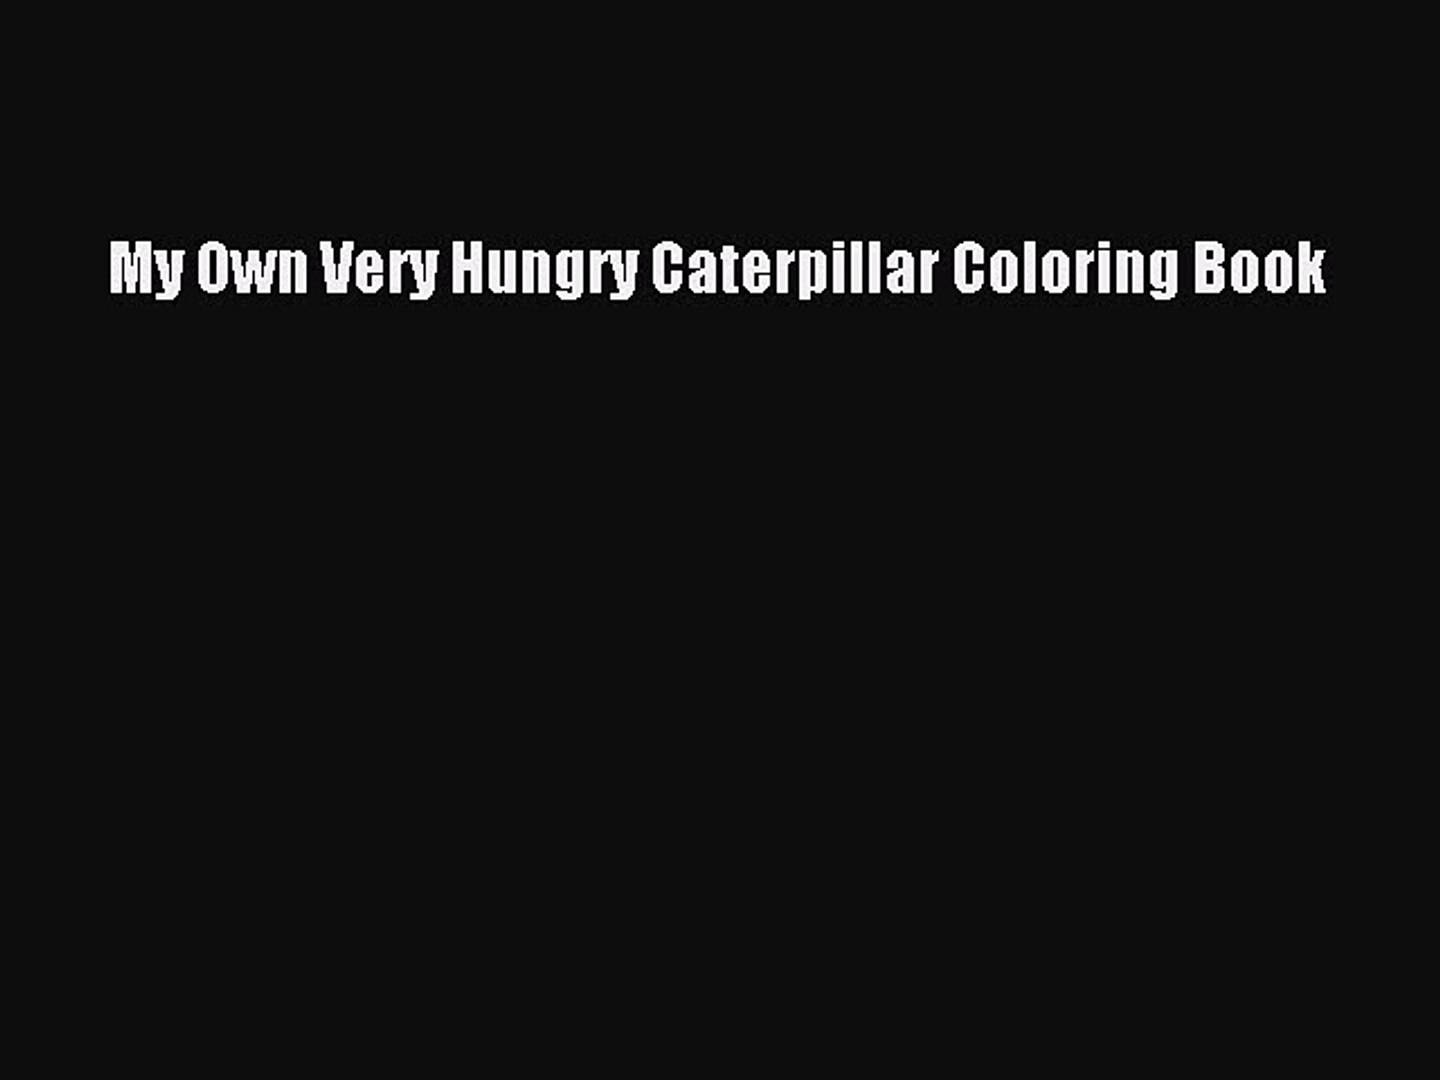 My Own Very Hungry Caterpillar Coloring Book Free Download ...